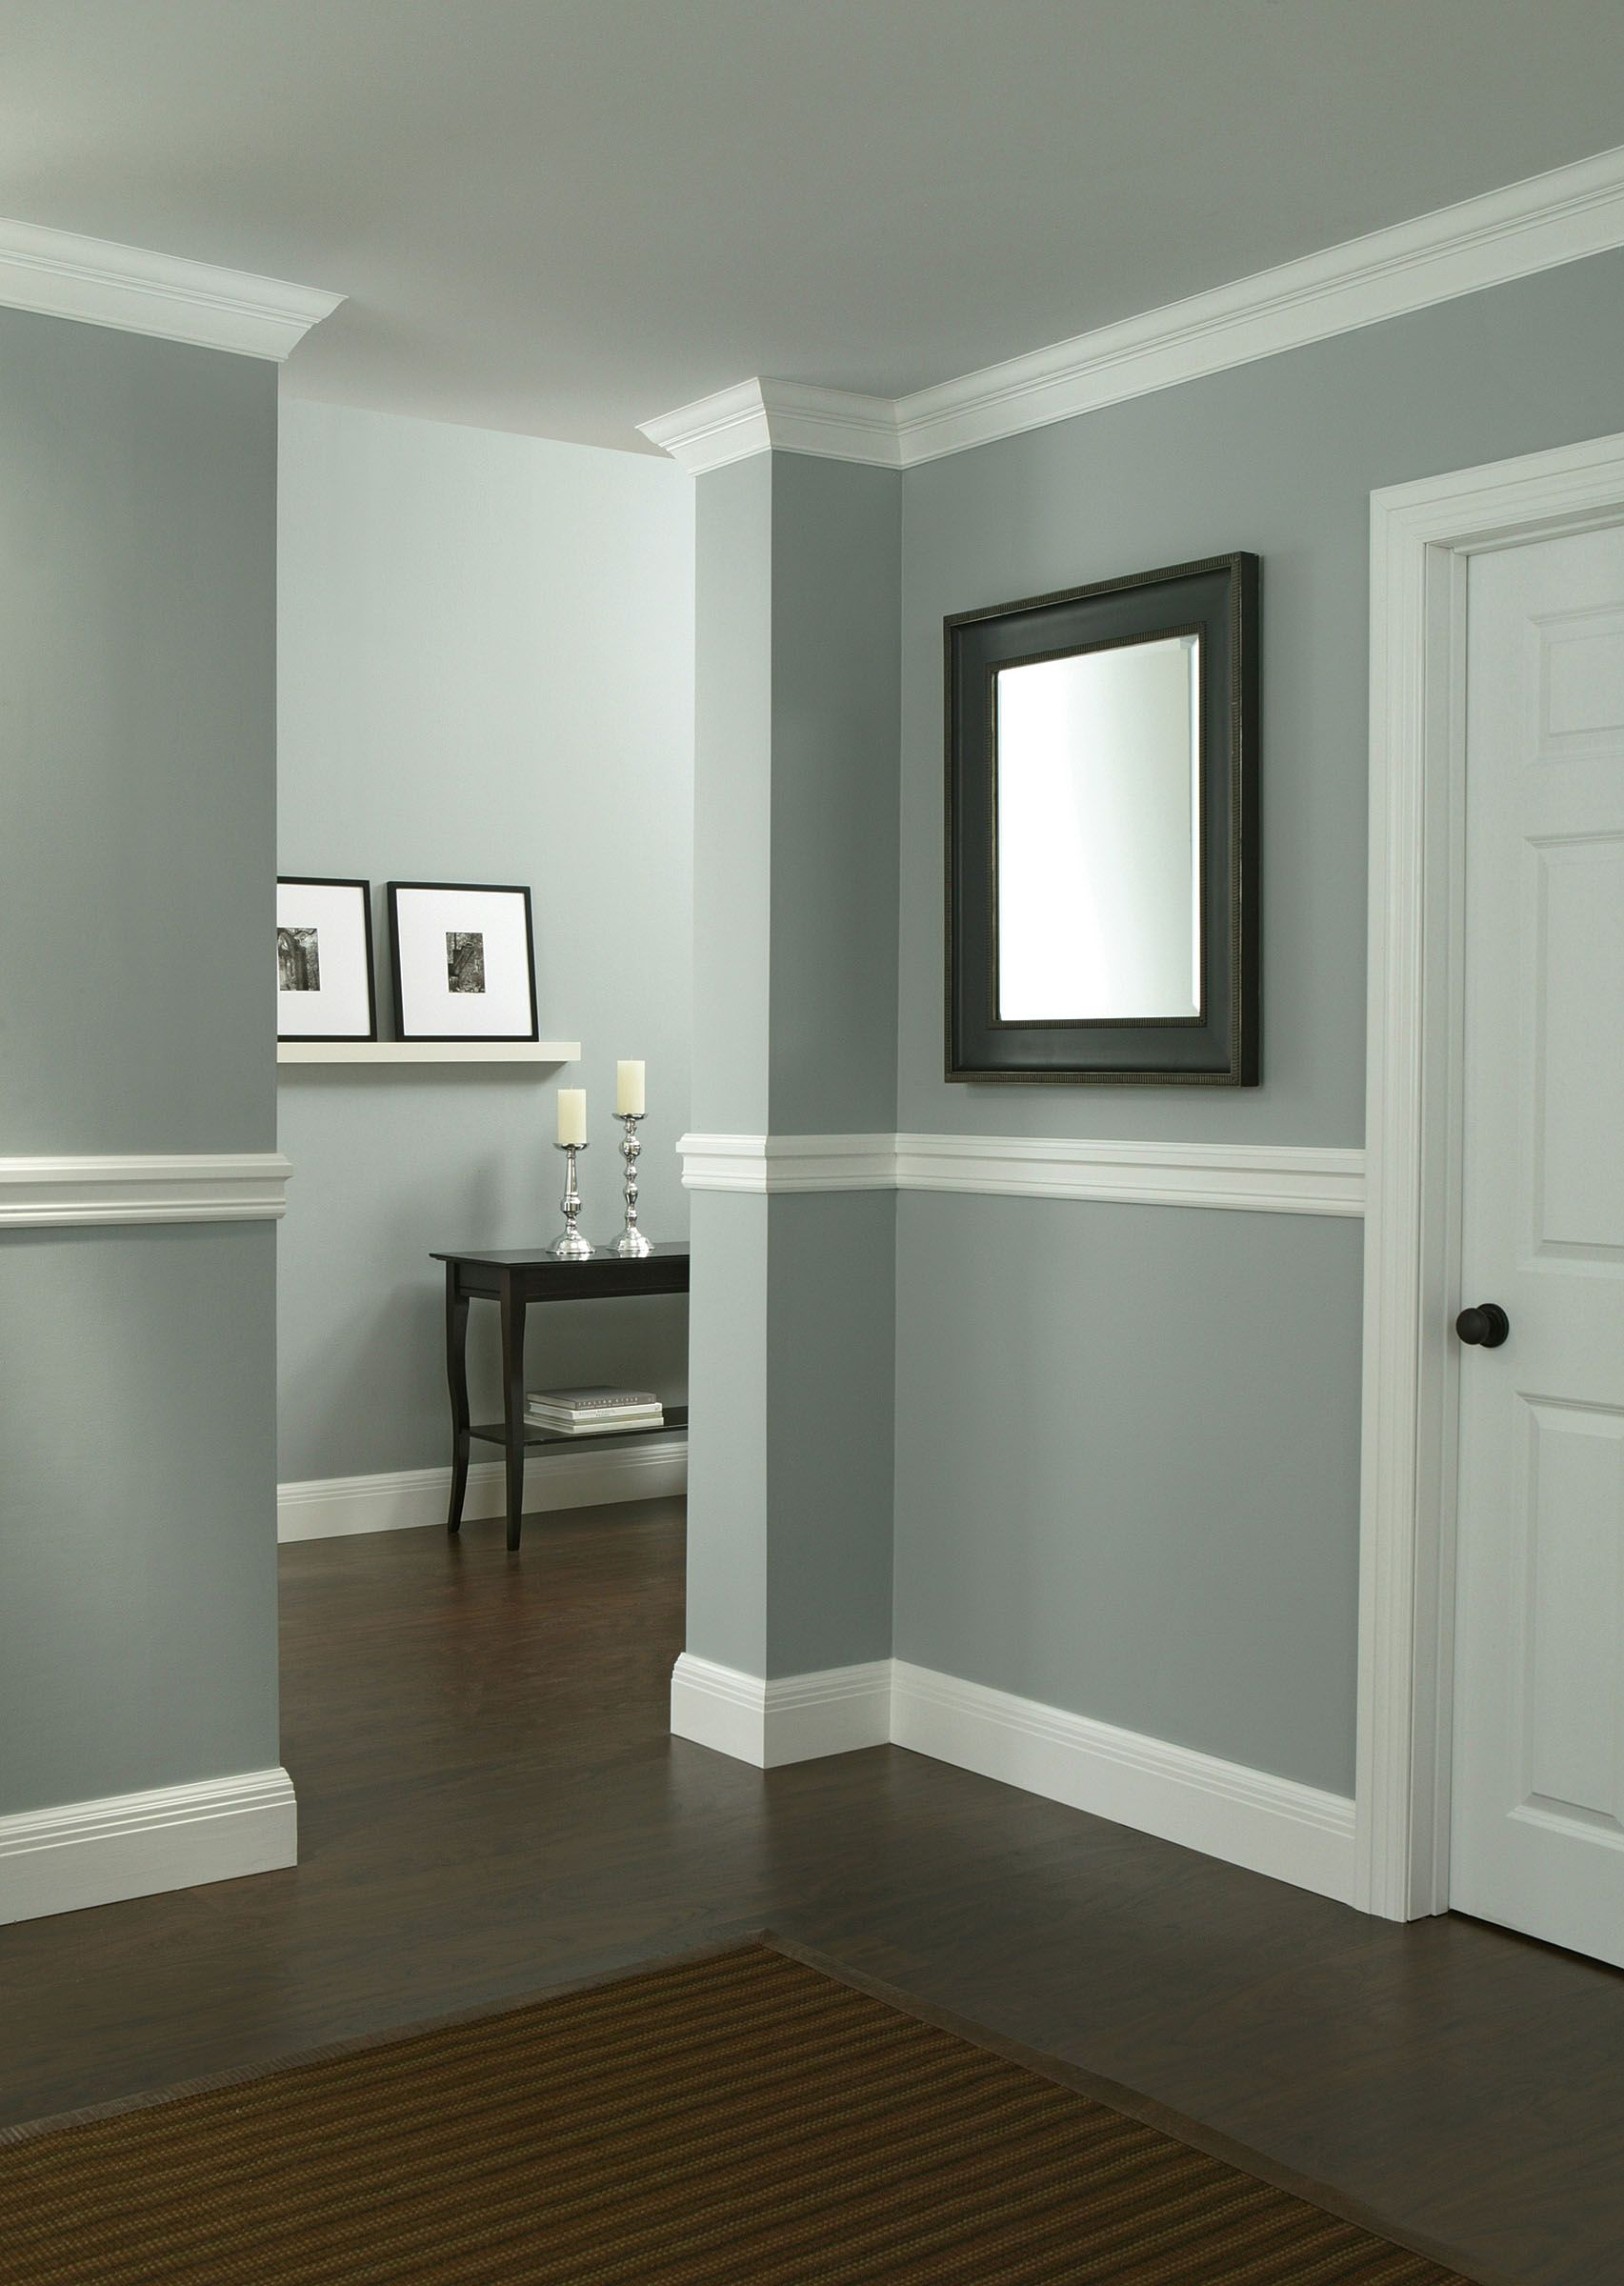 Bedroom Ceiling Moulding 7 43 Wainscoting Styles To Design Every Room For Your Next